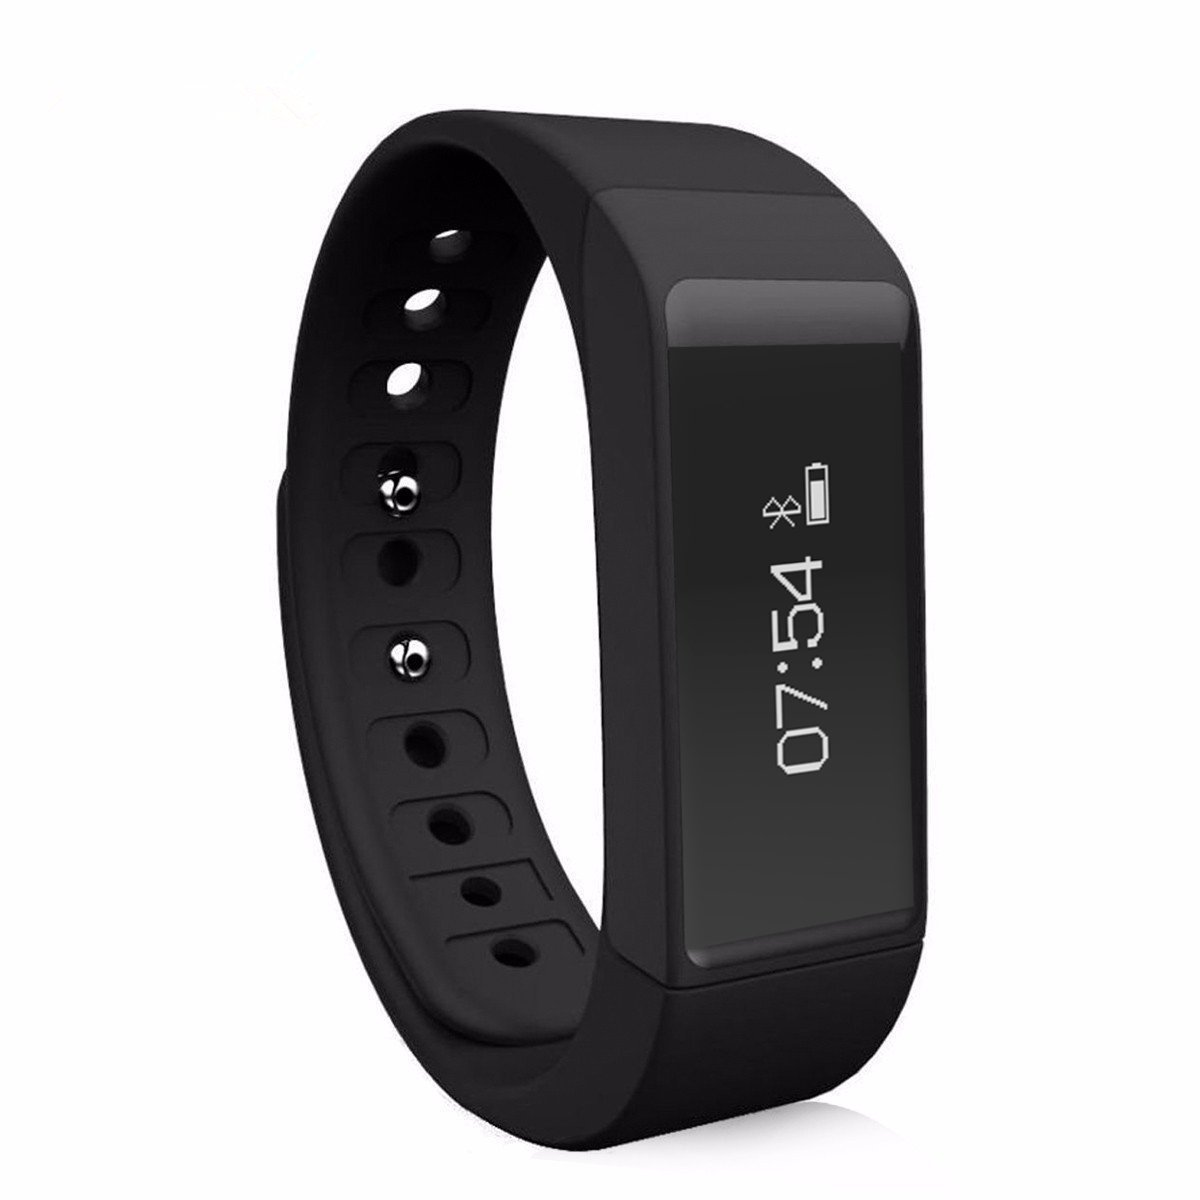 band monitor bracelet bluetooth f smart rate fitness mu tracker lot heart itm watch